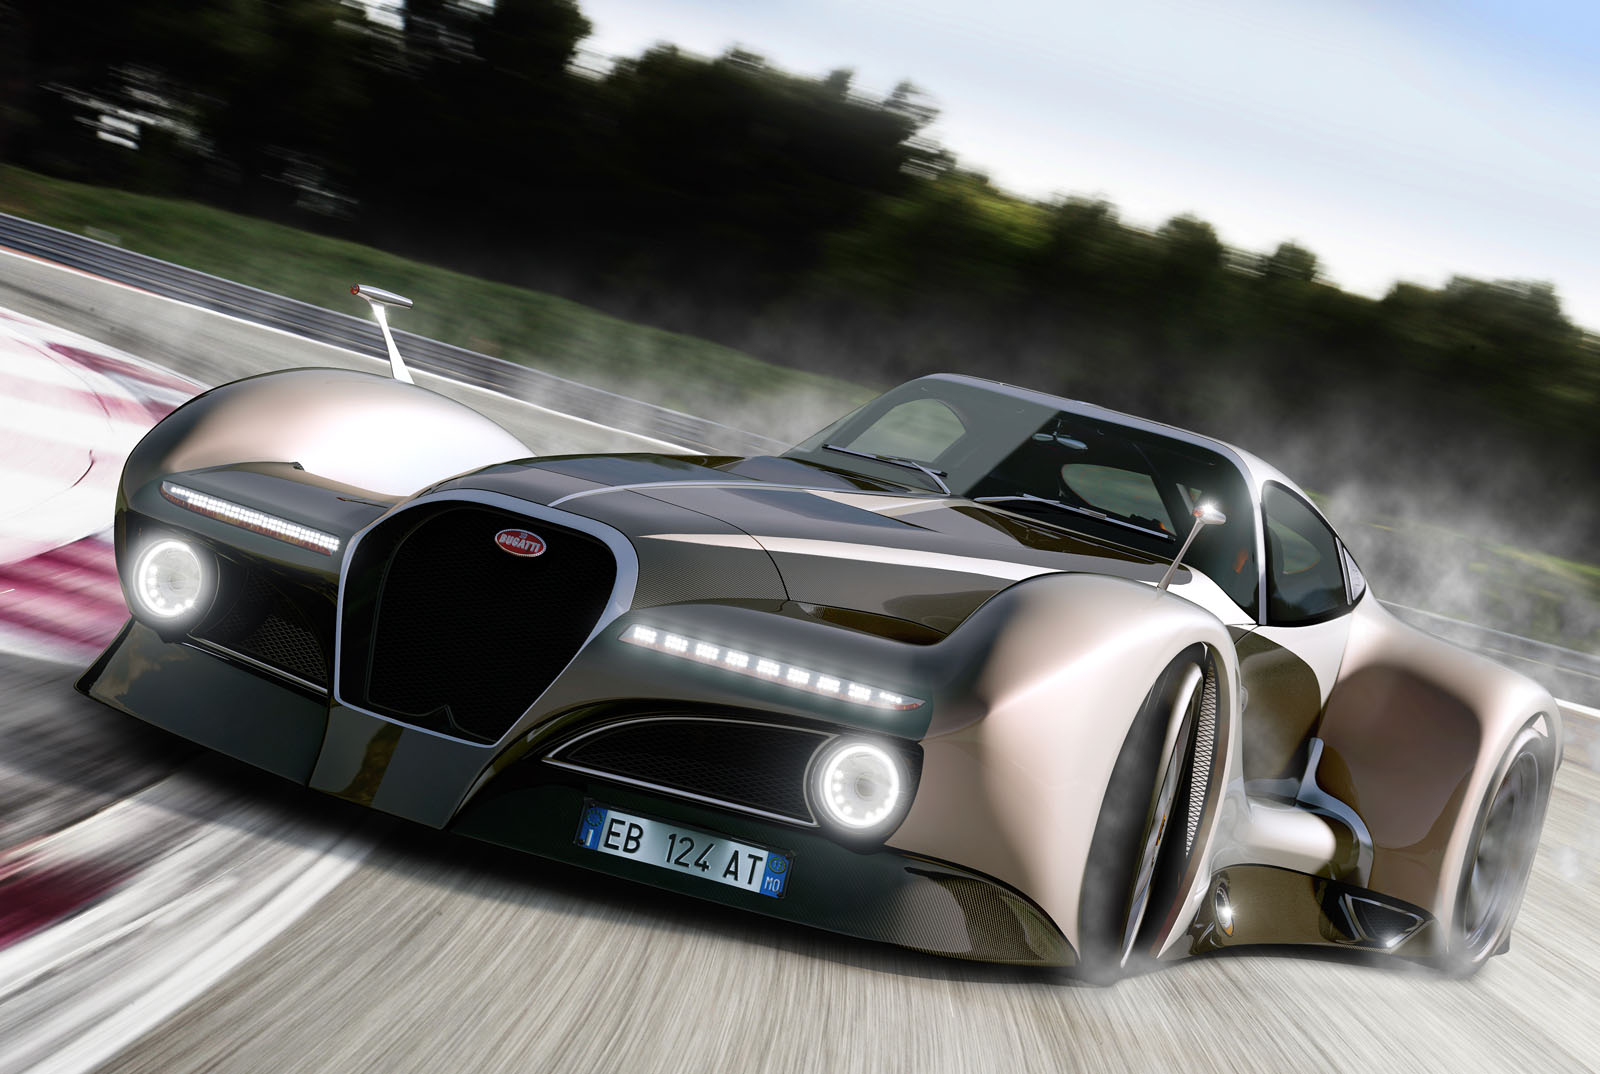 Bugatti 12 4 Atlantique Concept Car Car News Wheelers